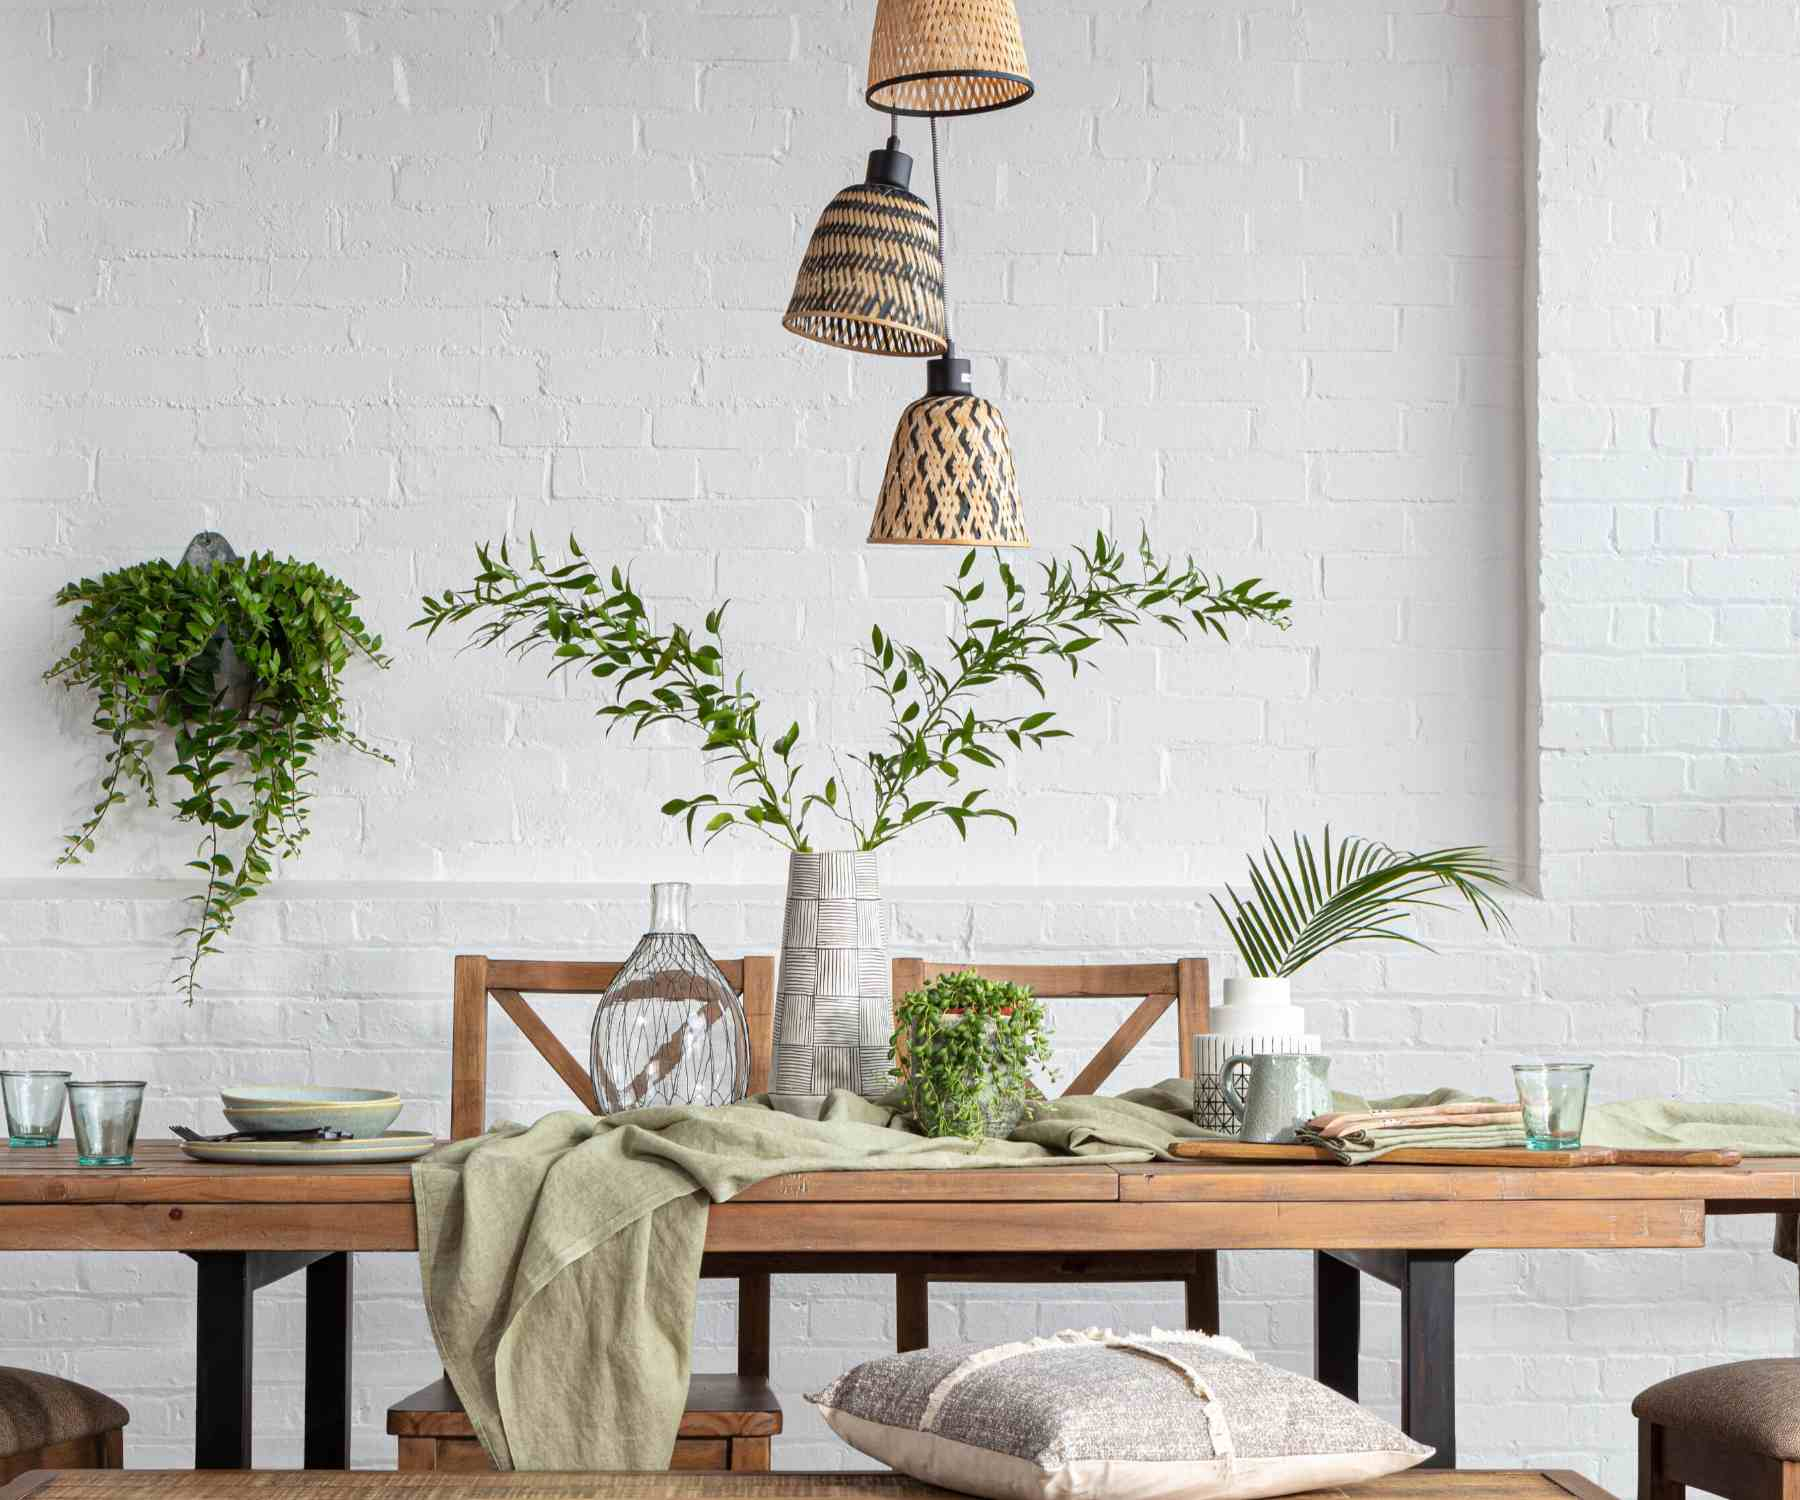 Green plants on reclaimed wood dining table and on white brick wall